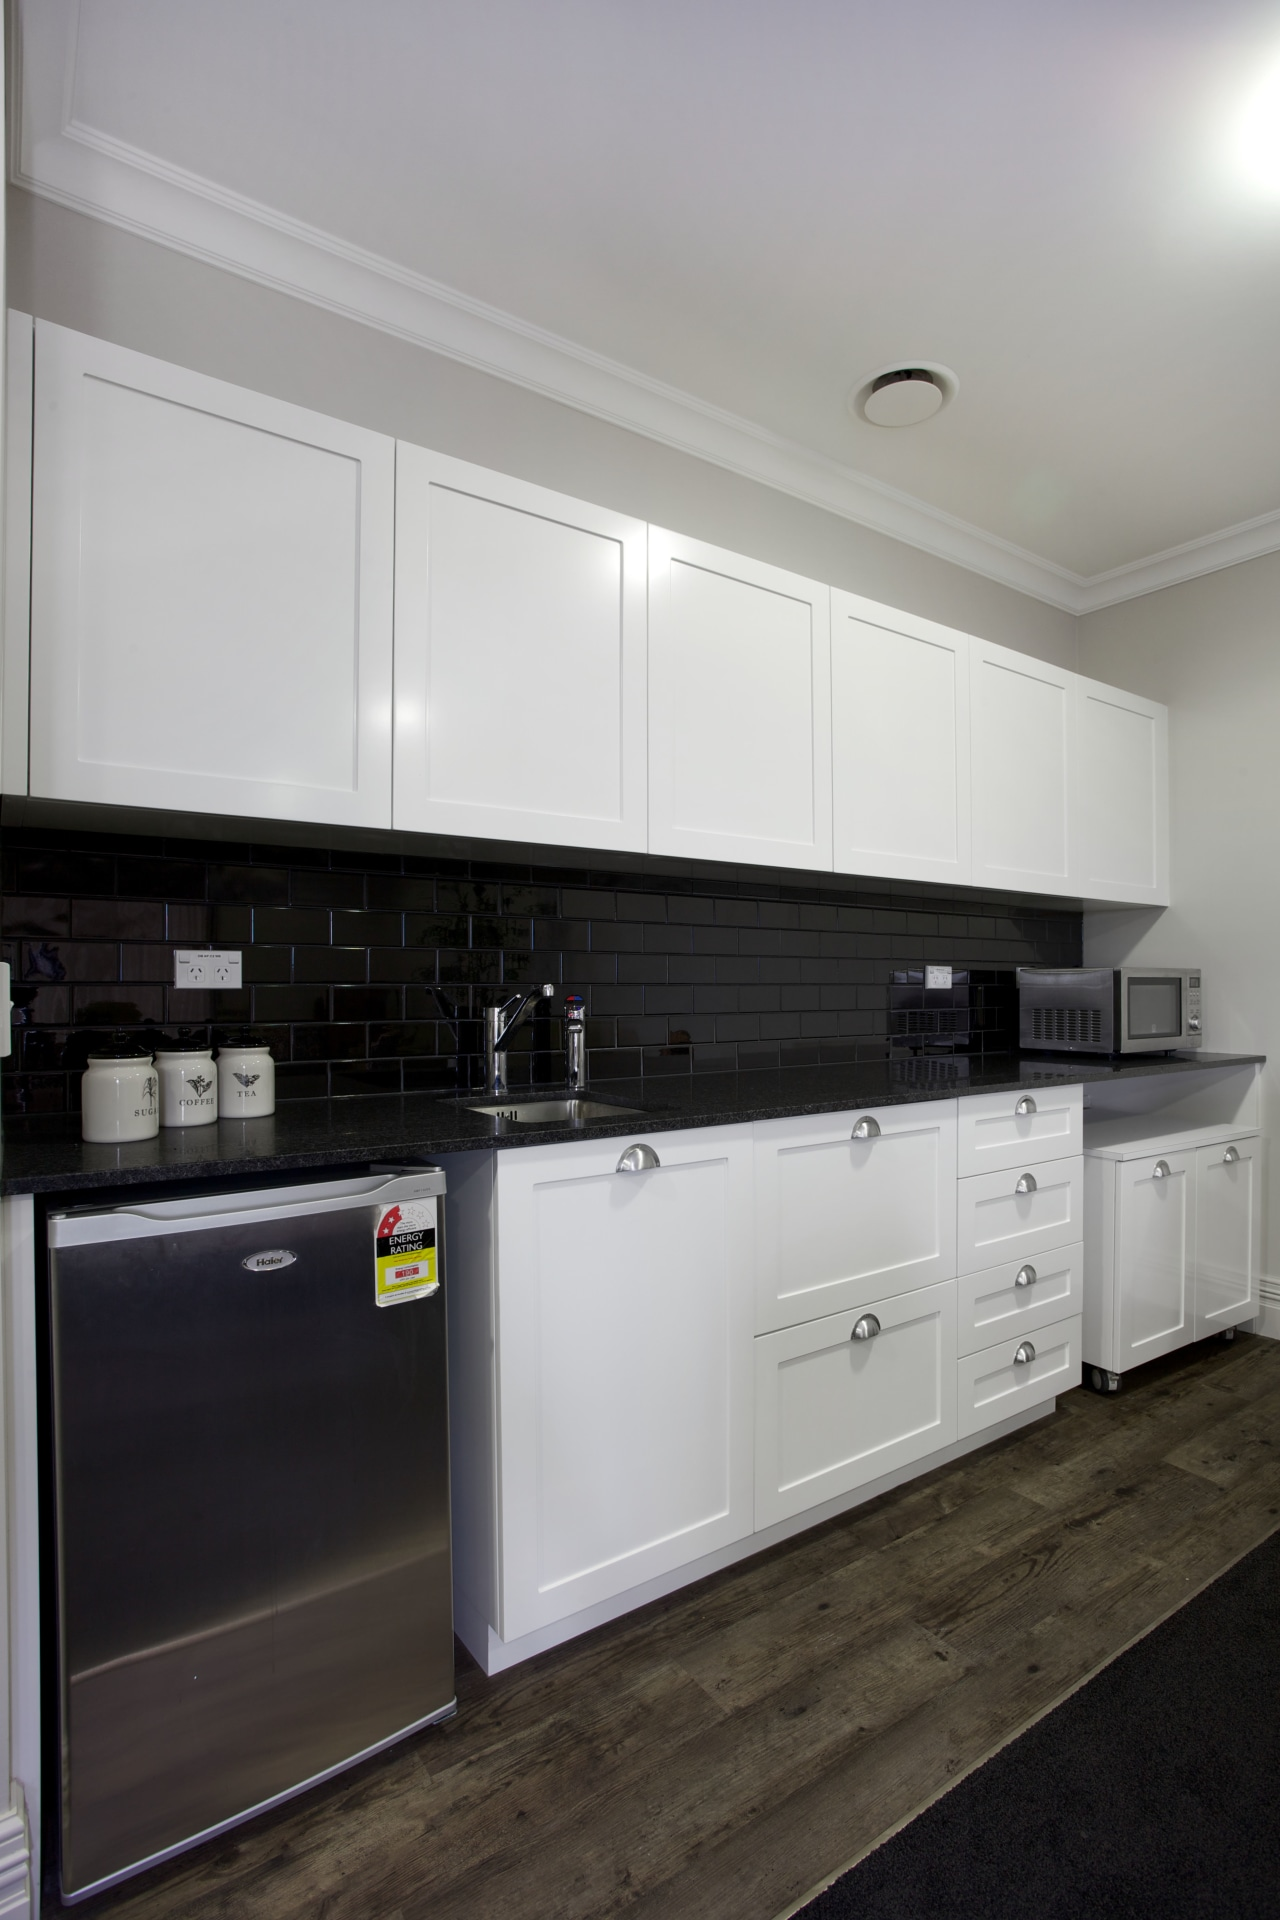 White limante kitchen with stainless steel appliances cabinetry, countertop, cuisine classique, interior design, kitchen, kitchen stove, room, gray, black